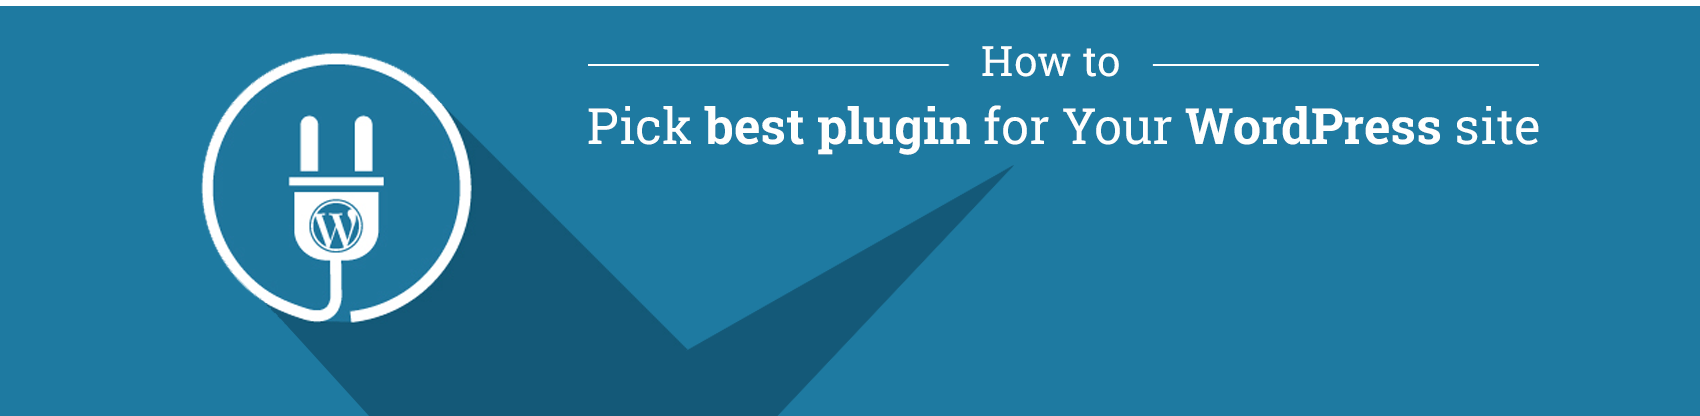 How to pick best plugin for your WordPress site